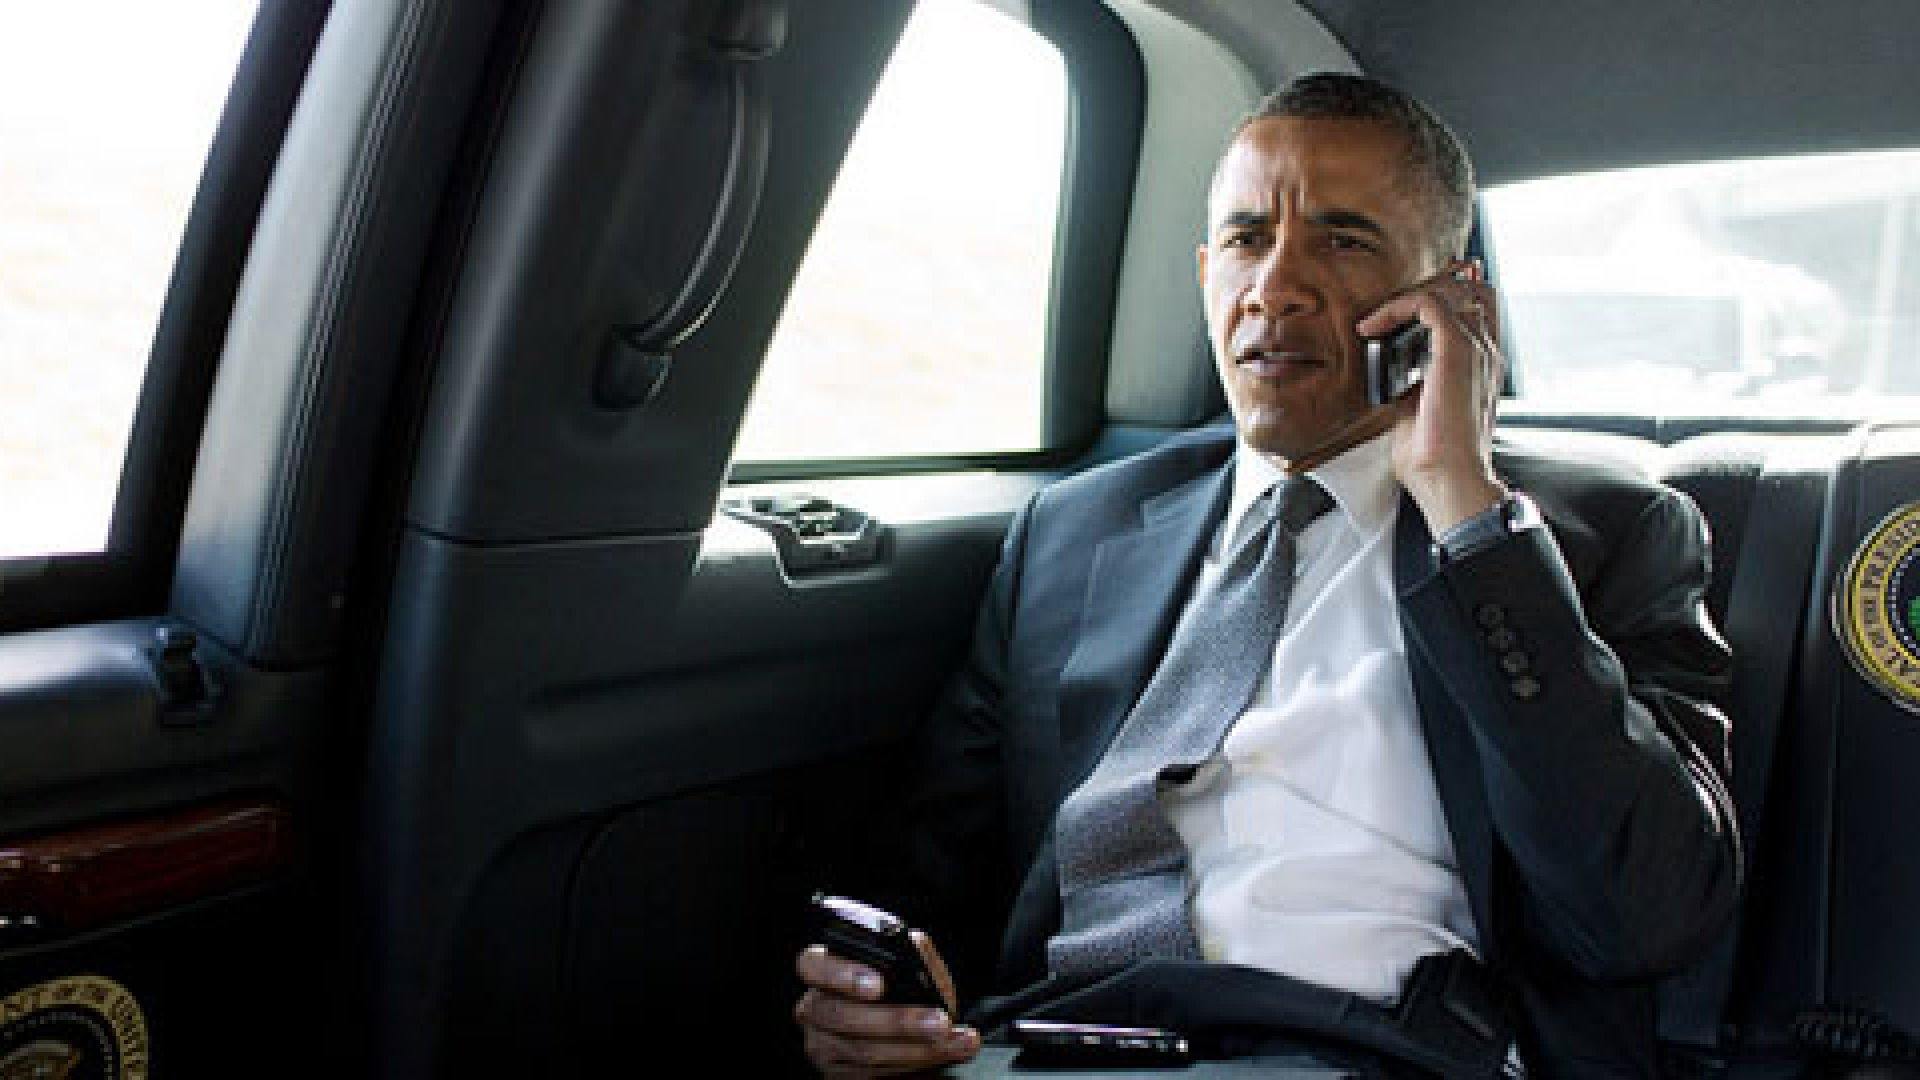 Does Obama Really Believe You Didn't Build Your Business?